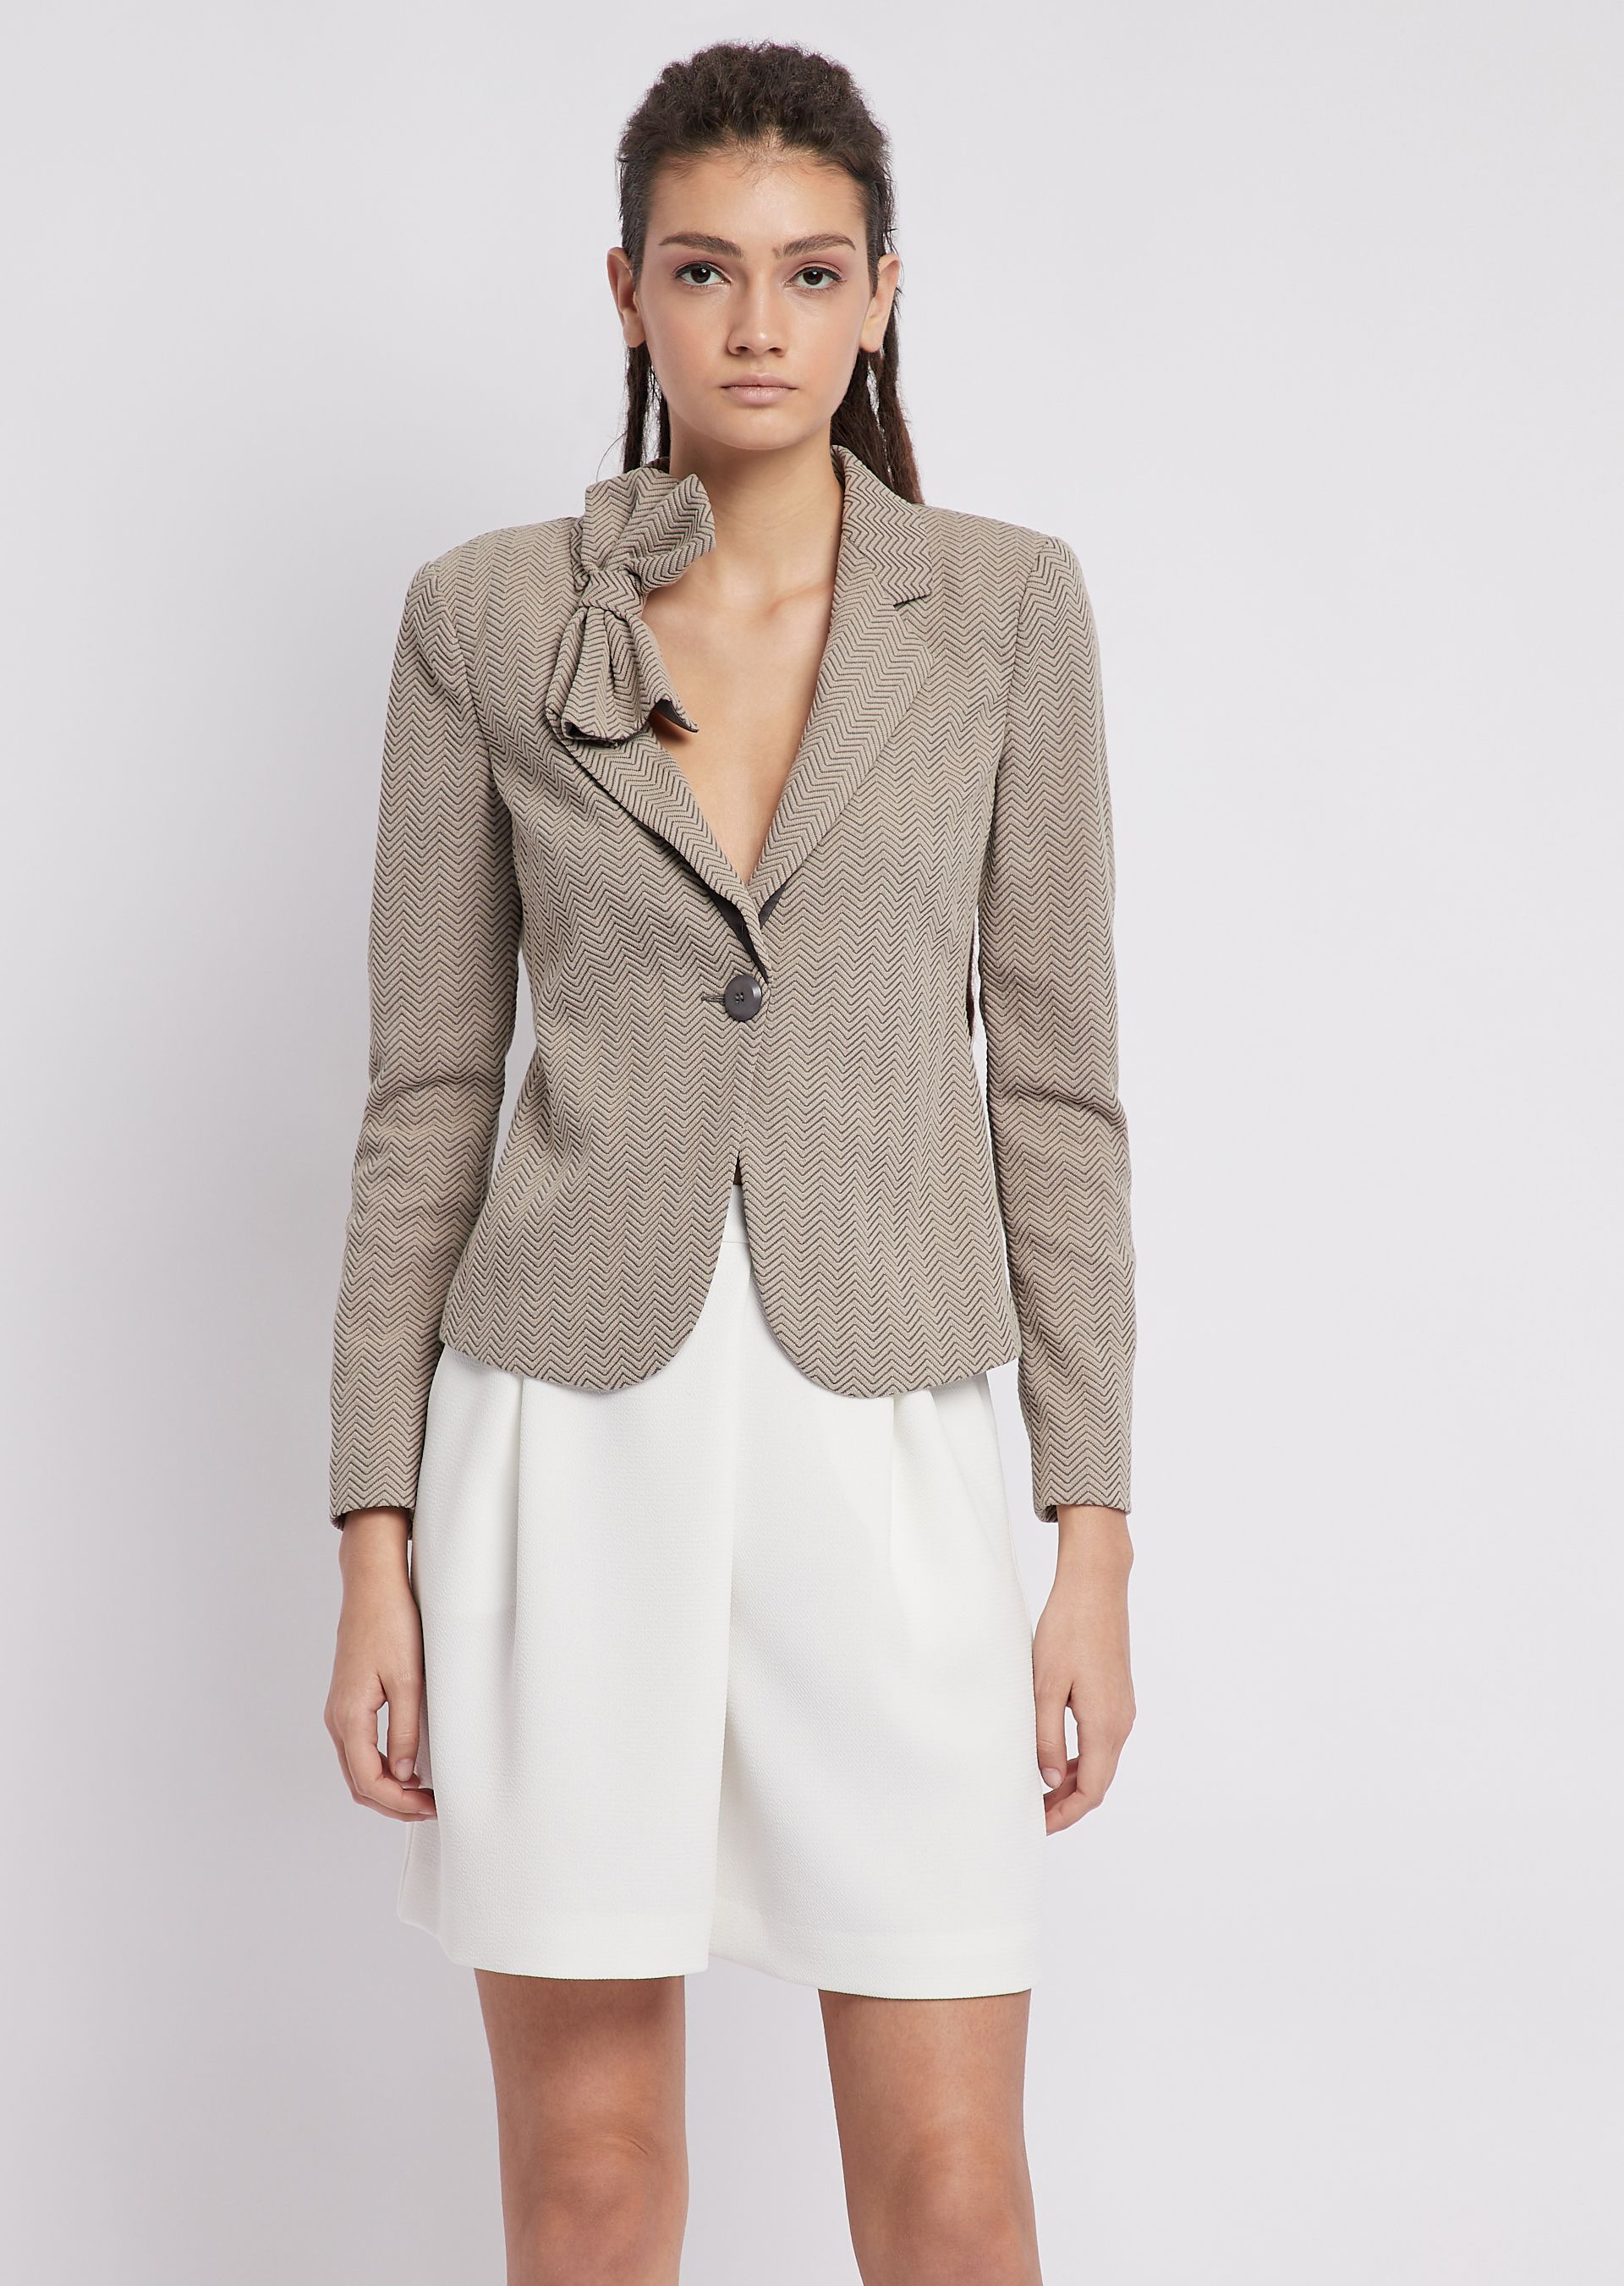 Fashion Jackets - Item 41860915 in Gray from ARMANI.COM